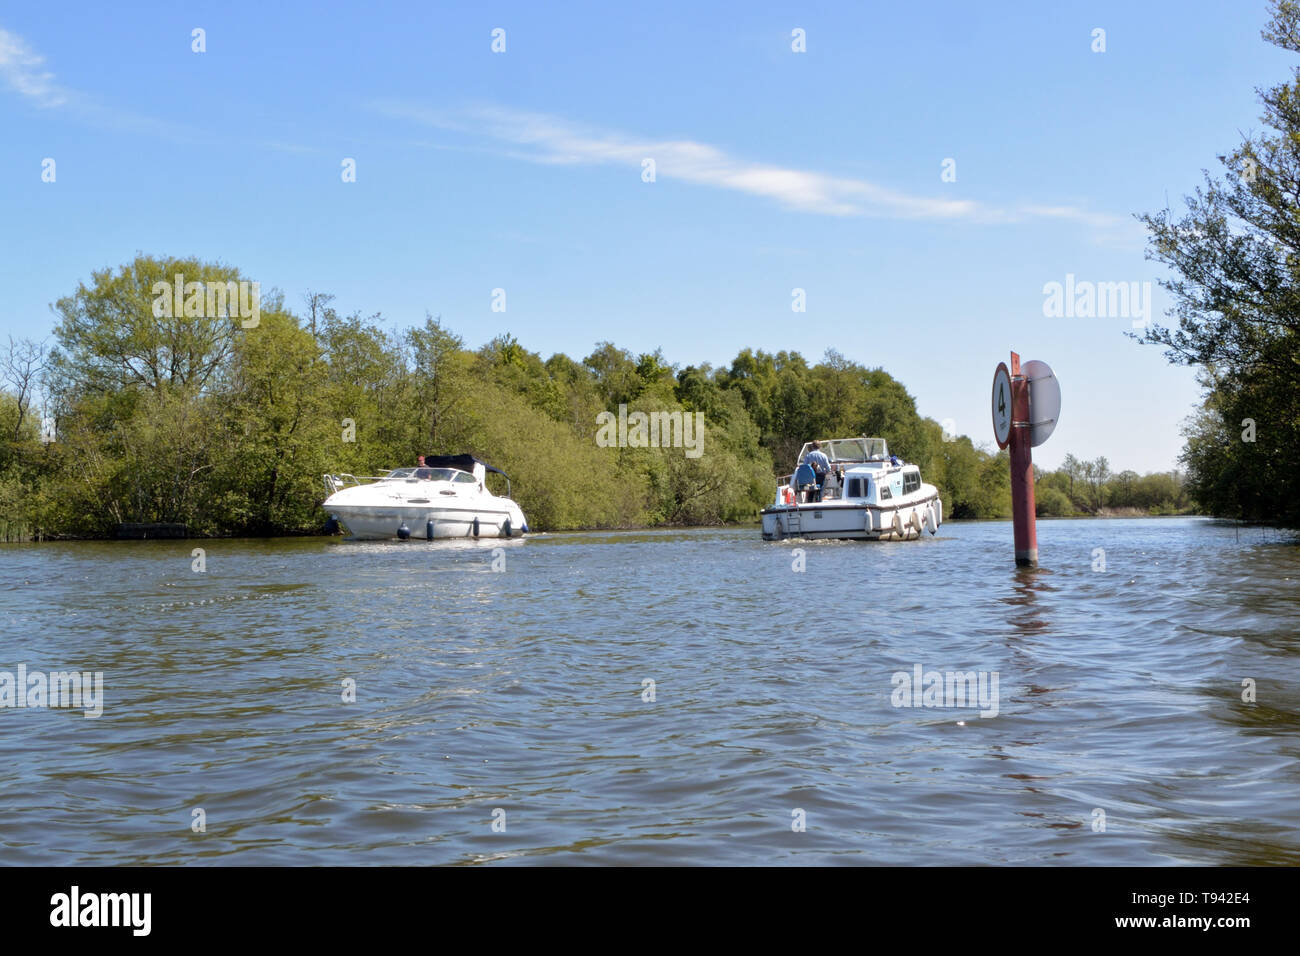 Cabin cruisers pass each other on the River Ant at the southern end of Barton Broad, Broads National Park, Norfolk, UK Stock Photo